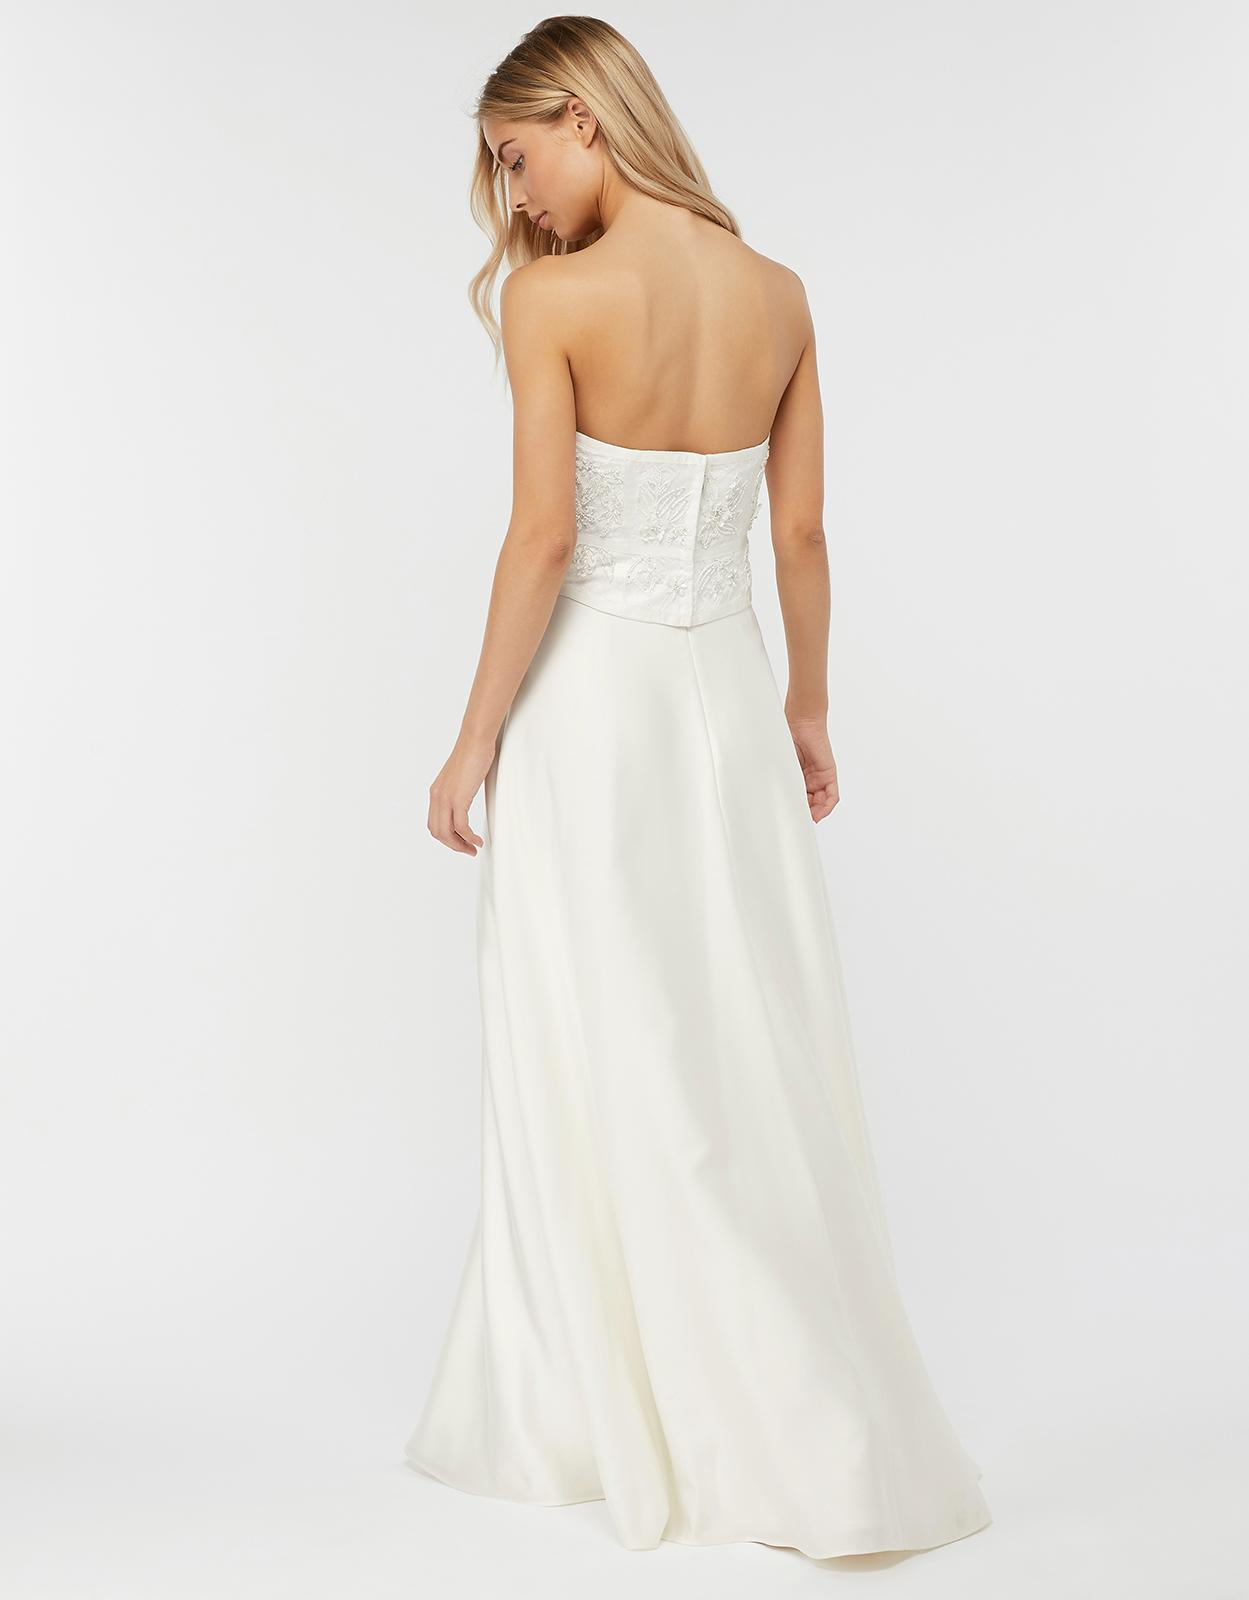 661a6f3c34 Monsoon Eugenie Embellished Bridal Corset in White - Lyst